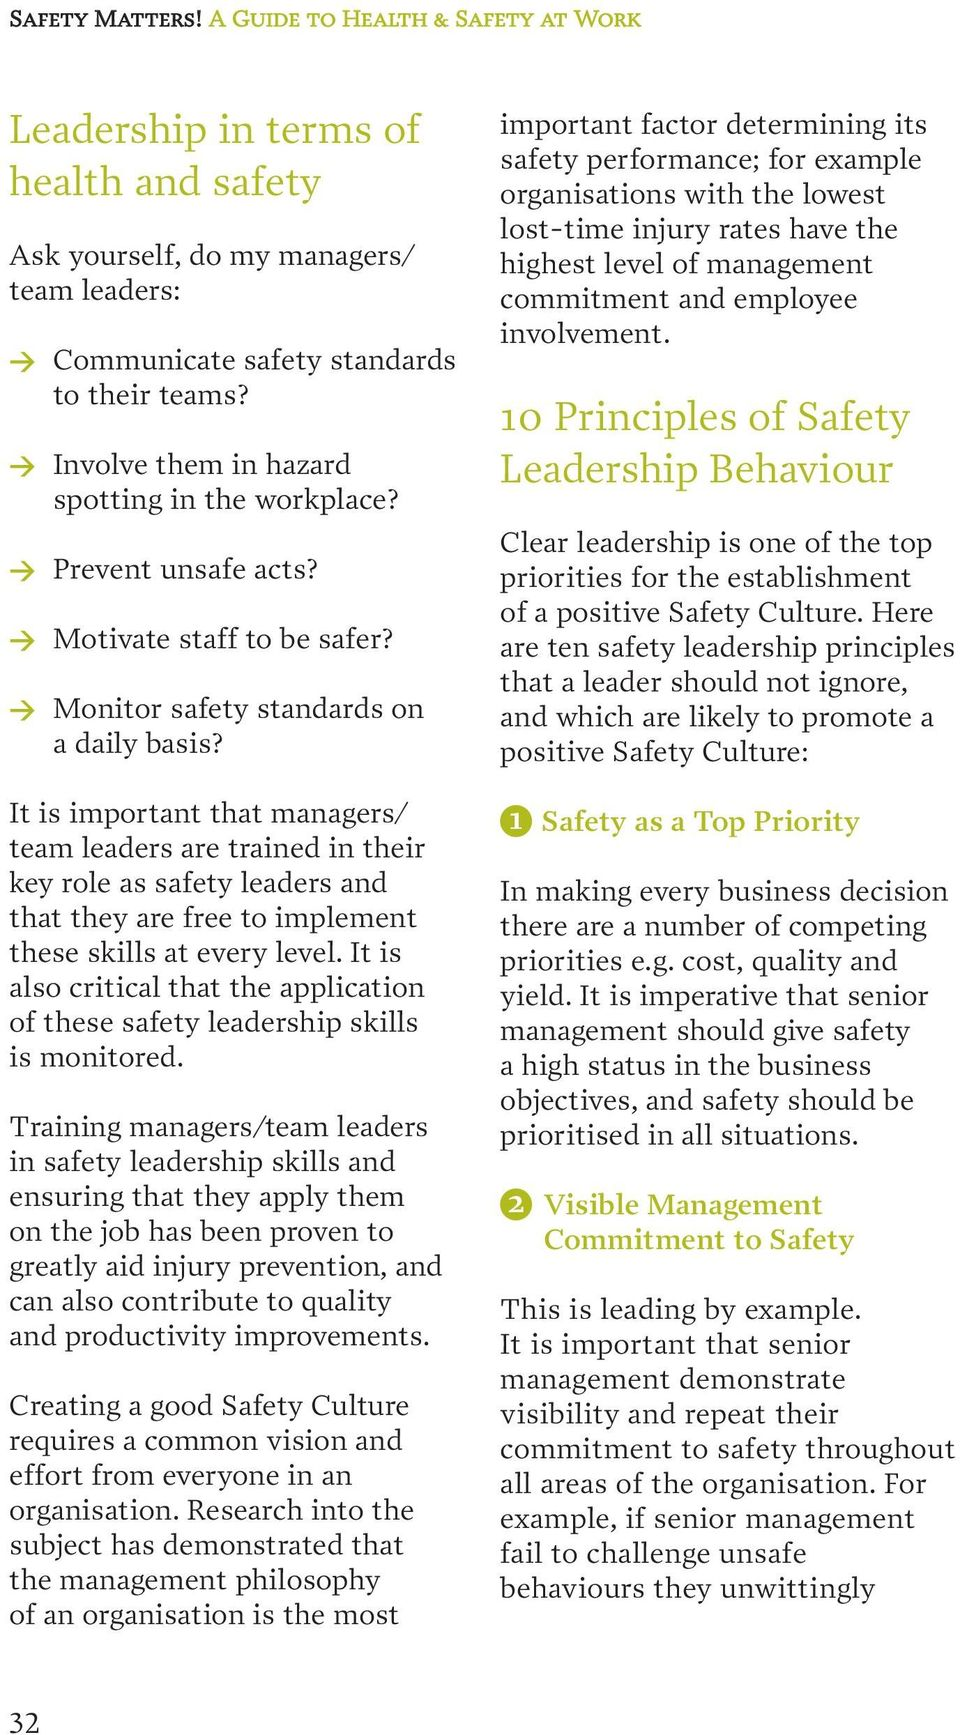 It is important that managers/ team leaders are trained in their key role as safety leaders and that they are free to implement these skills at every level.